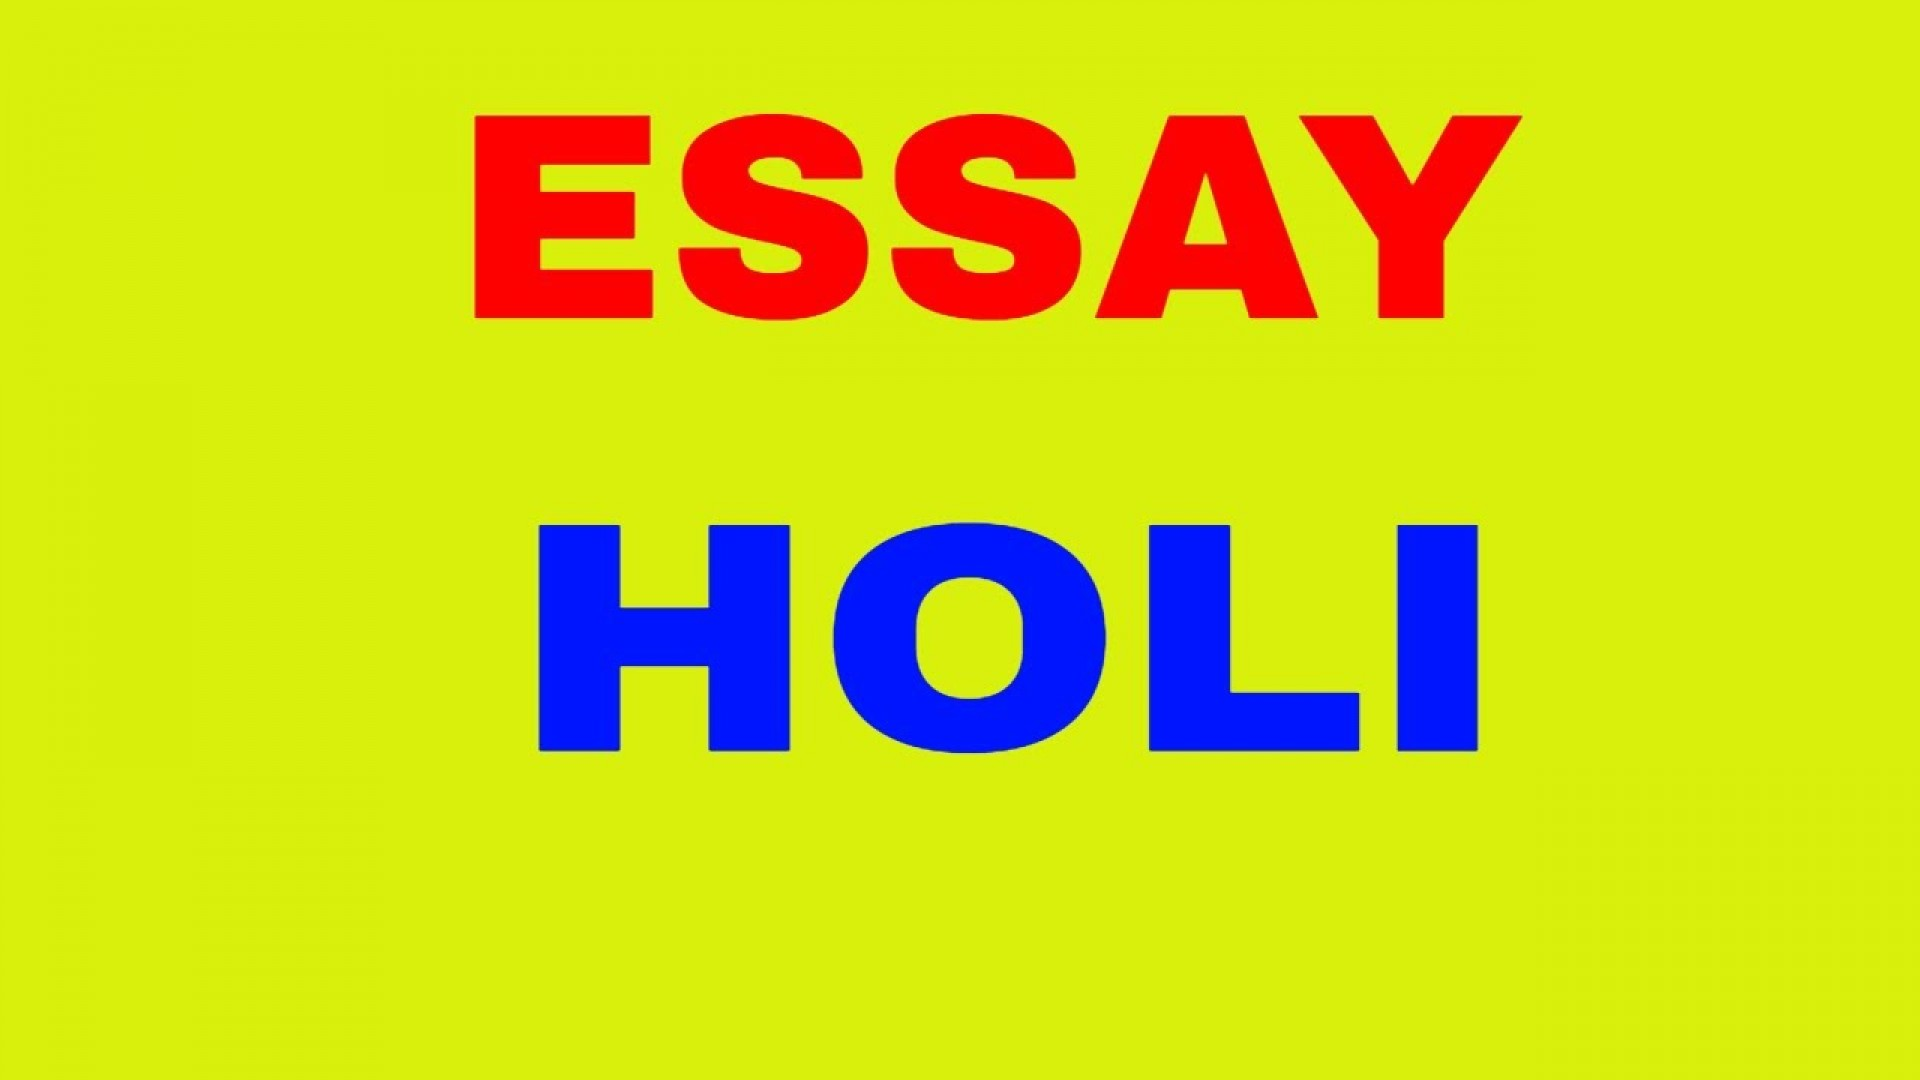 003 Maxresdefault Holi Essay In English Breathtaking For Class 1 10 Lines Easy 1920